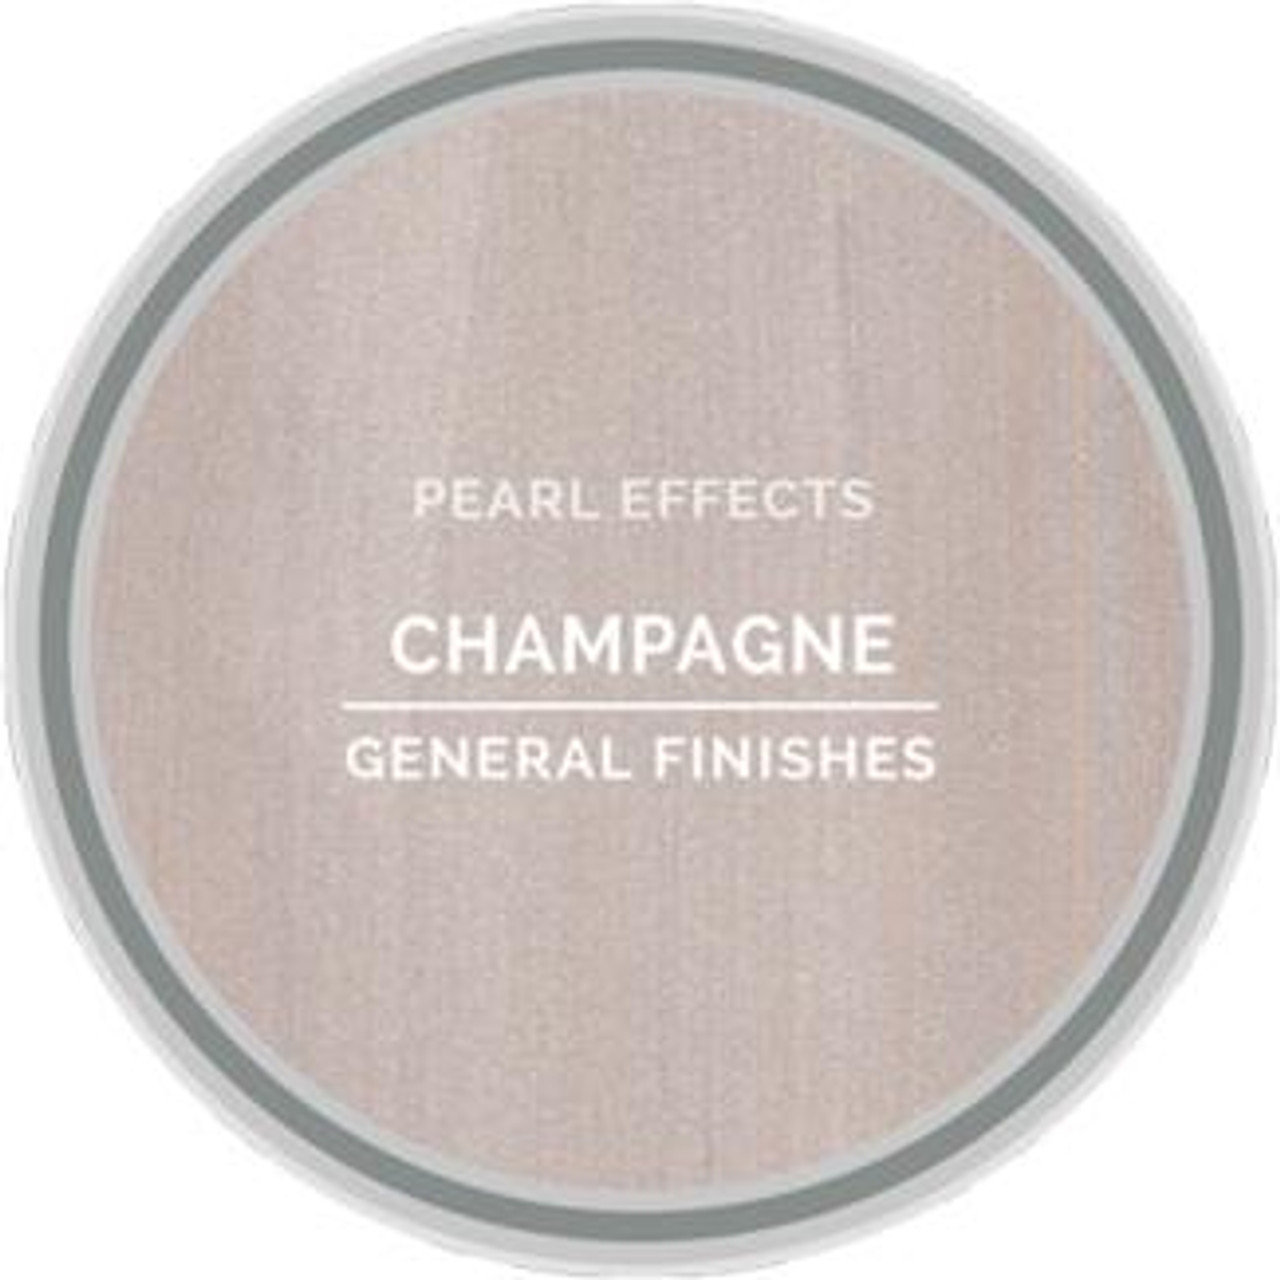 General Finishes General Finishes Pearl Effects